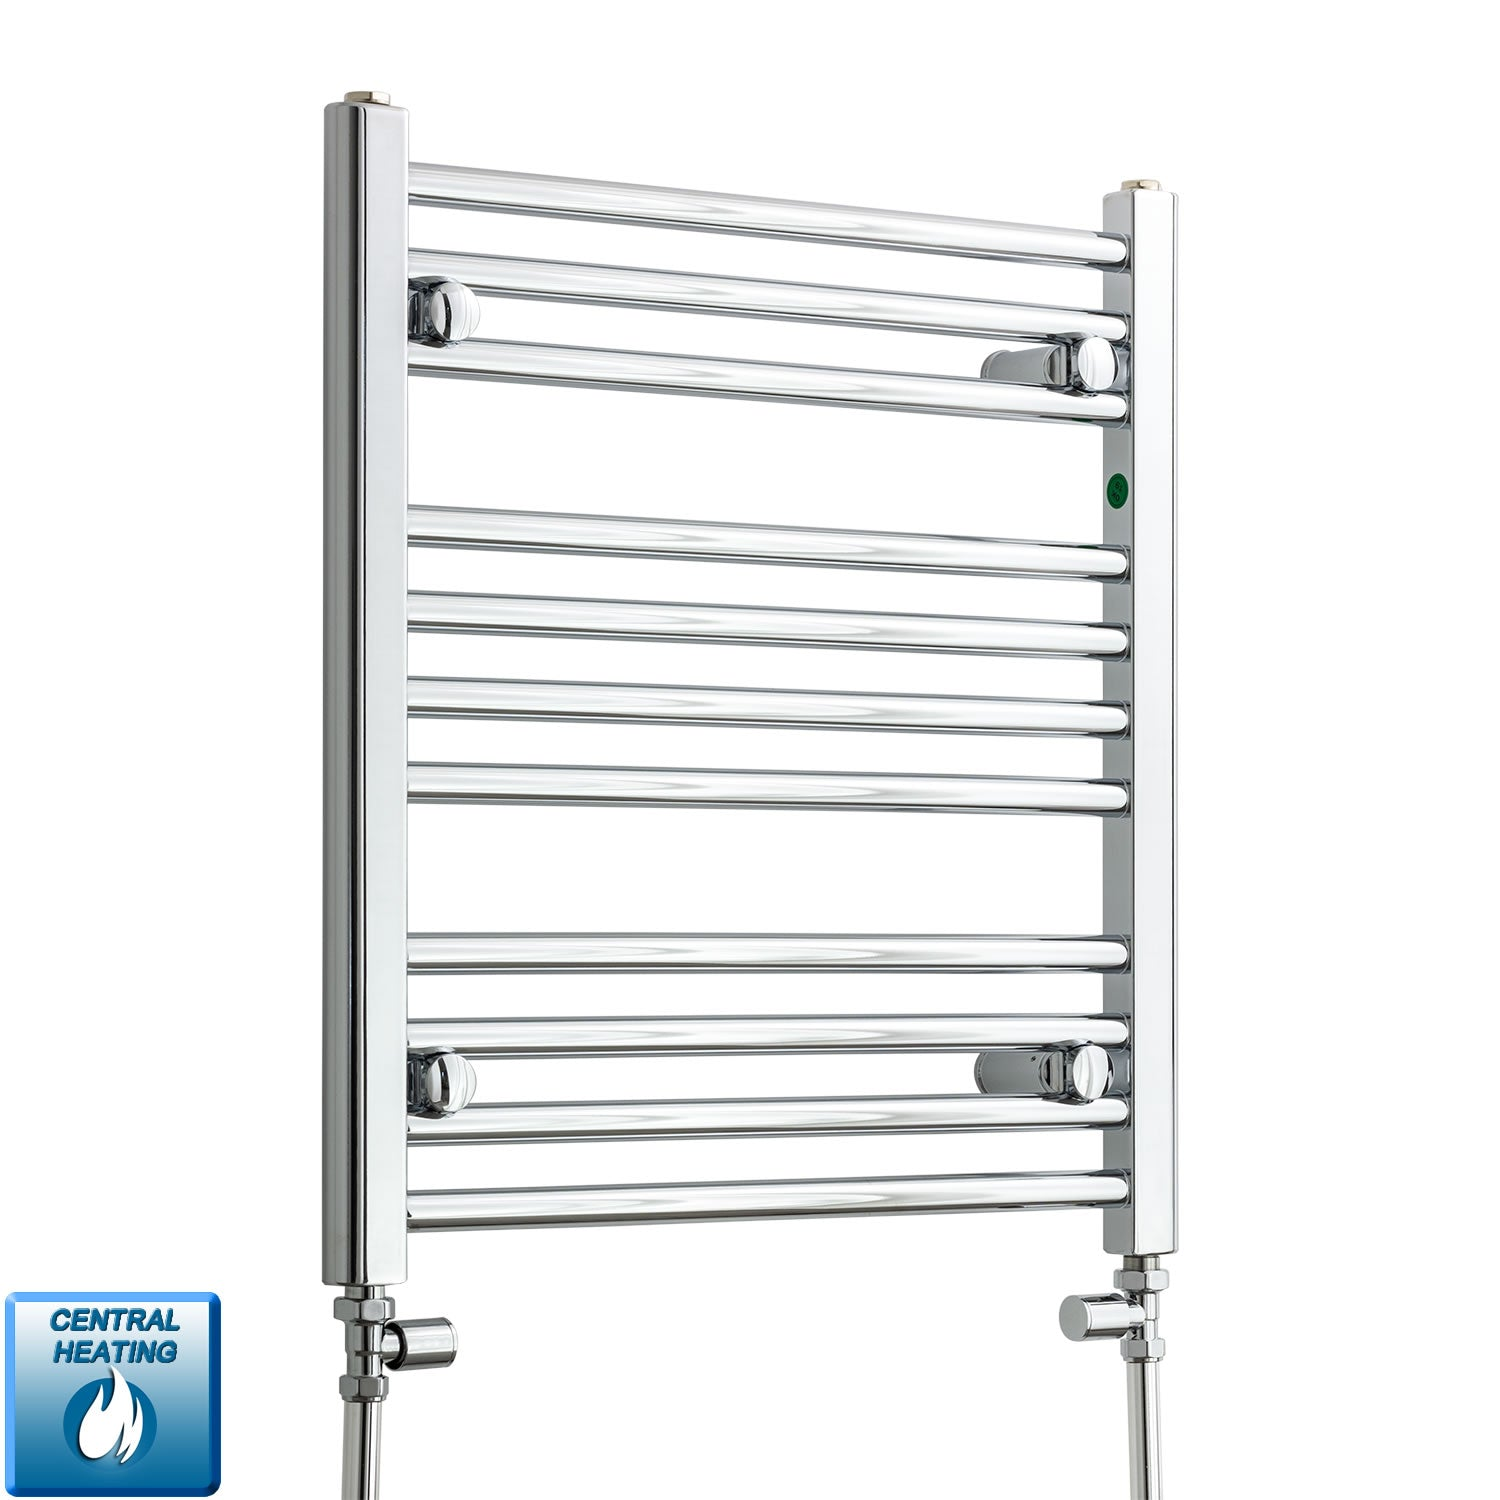 550mm Wide 600mm High Chrome Towel Rail Radiator With Straight Valve